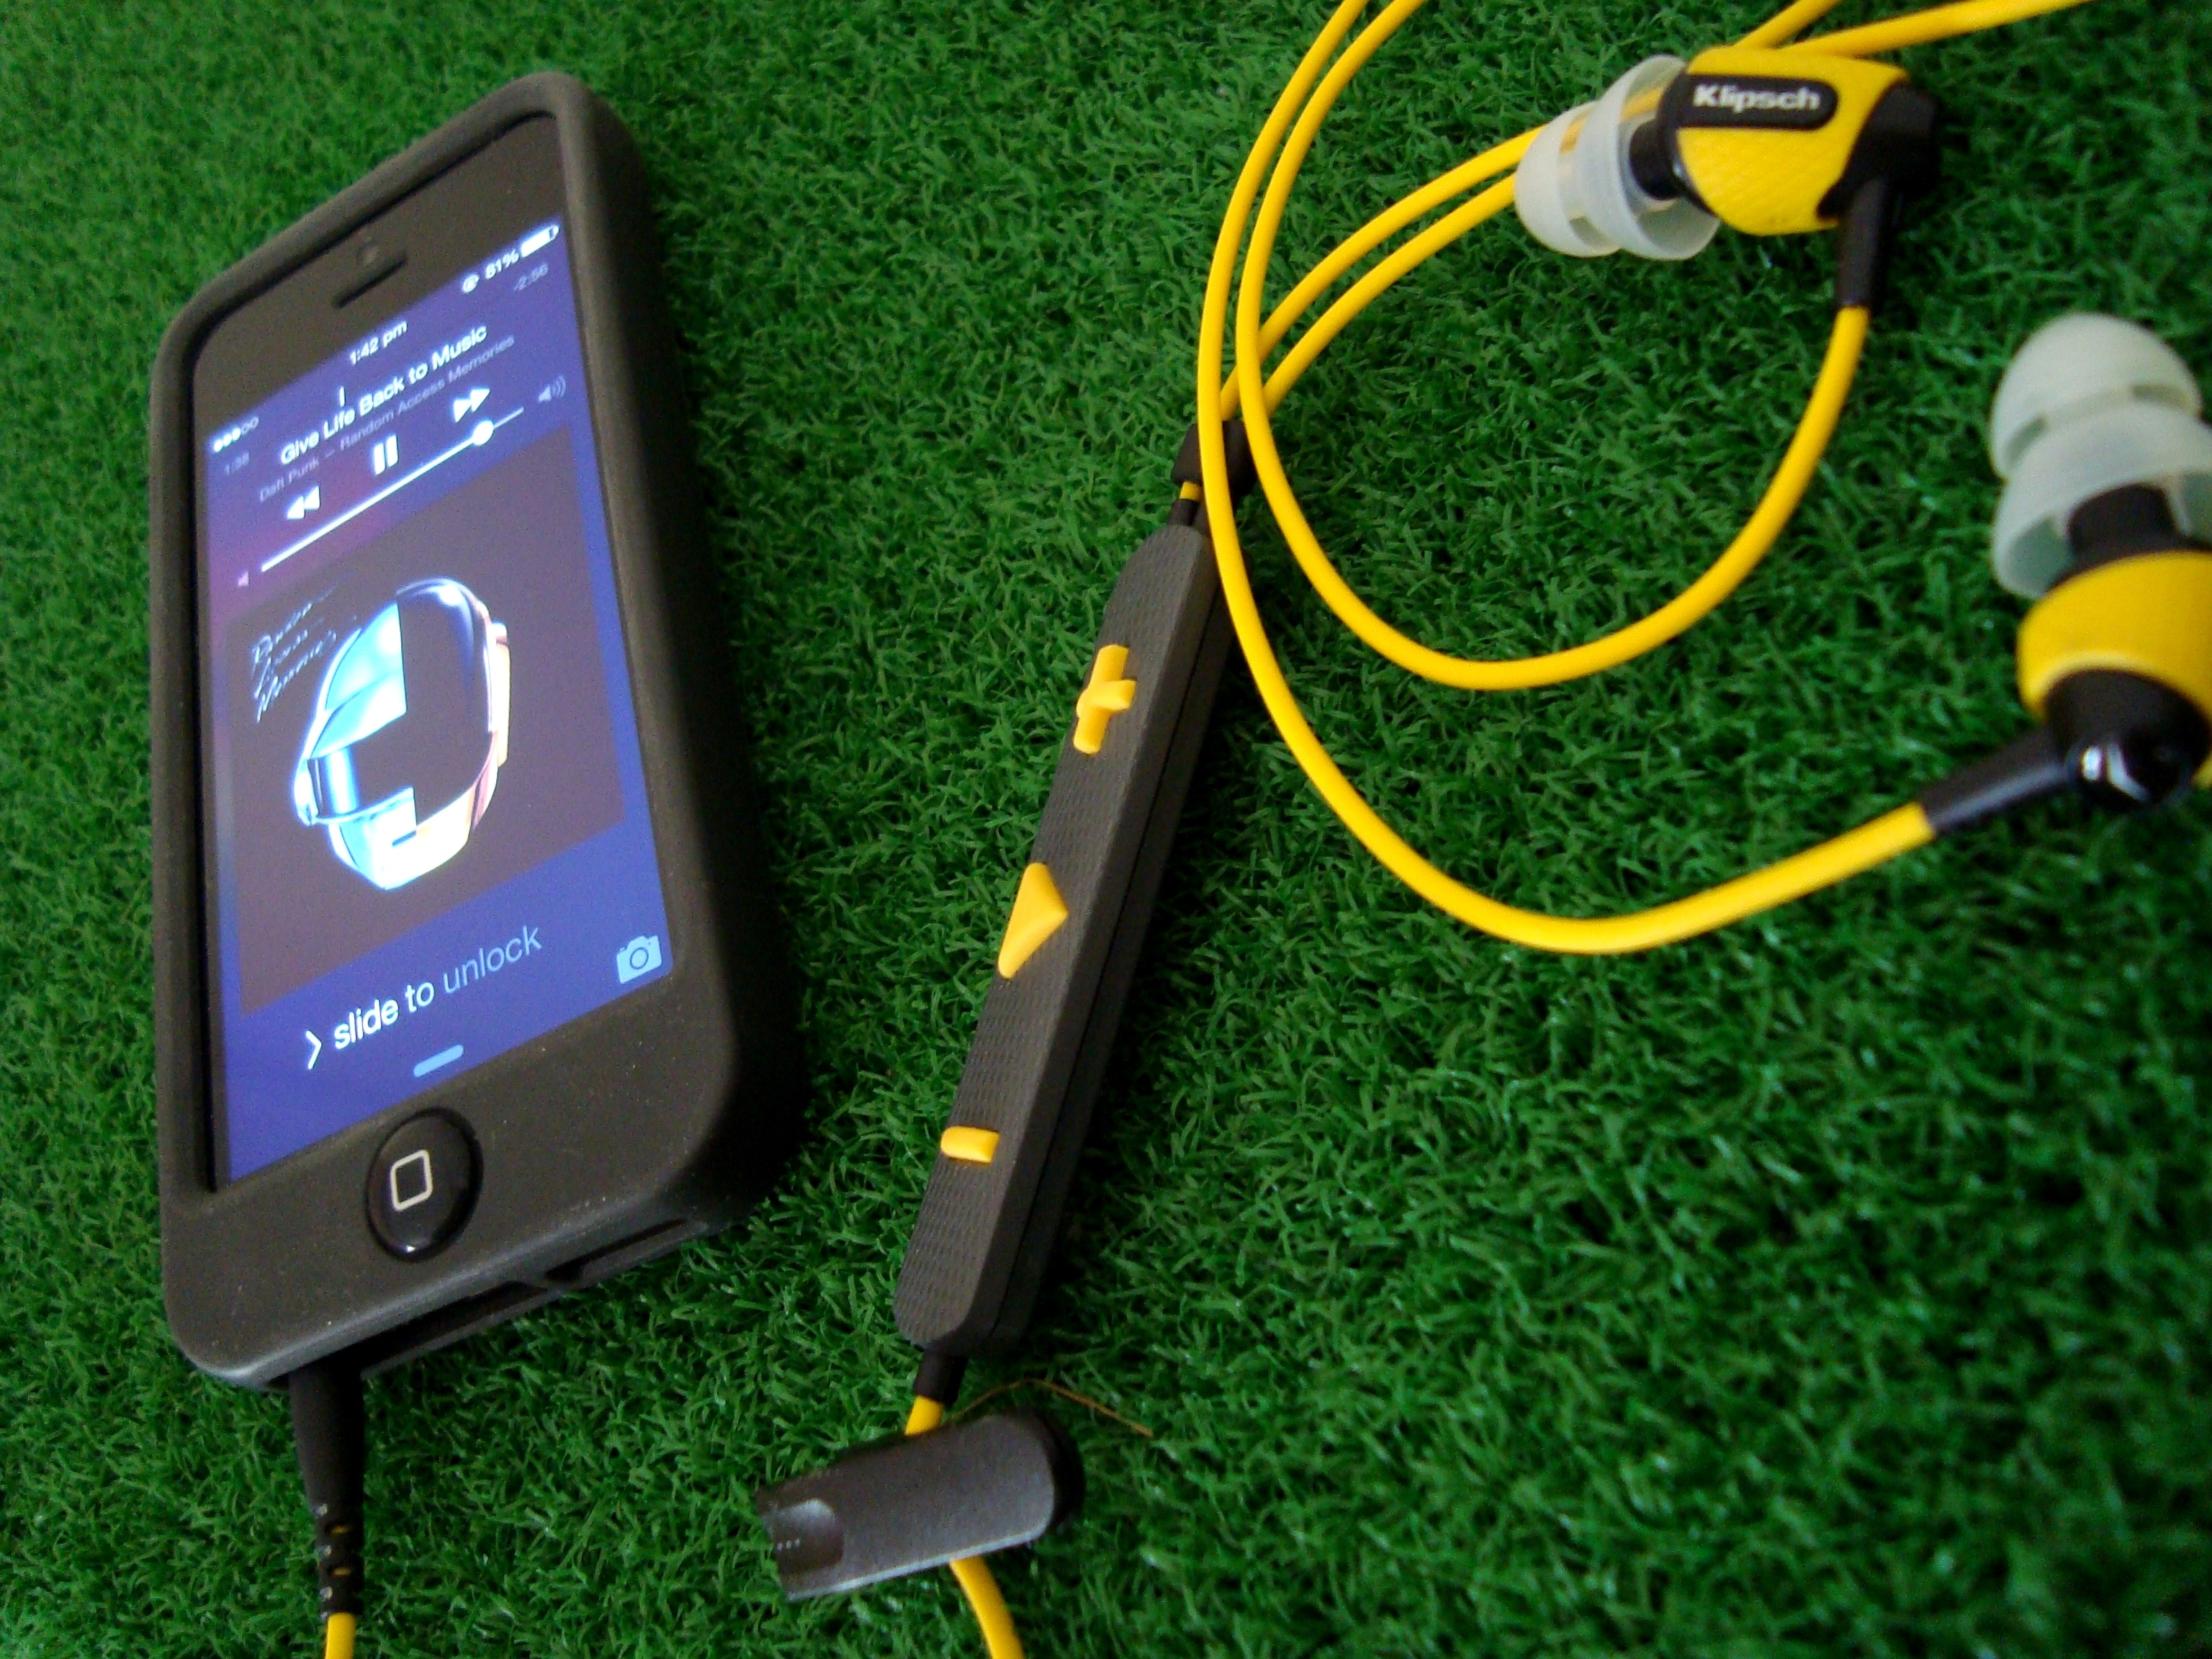 Klipsch S4i Rugged Earphone Connected To An IPhone 5 Playing Daft Punk